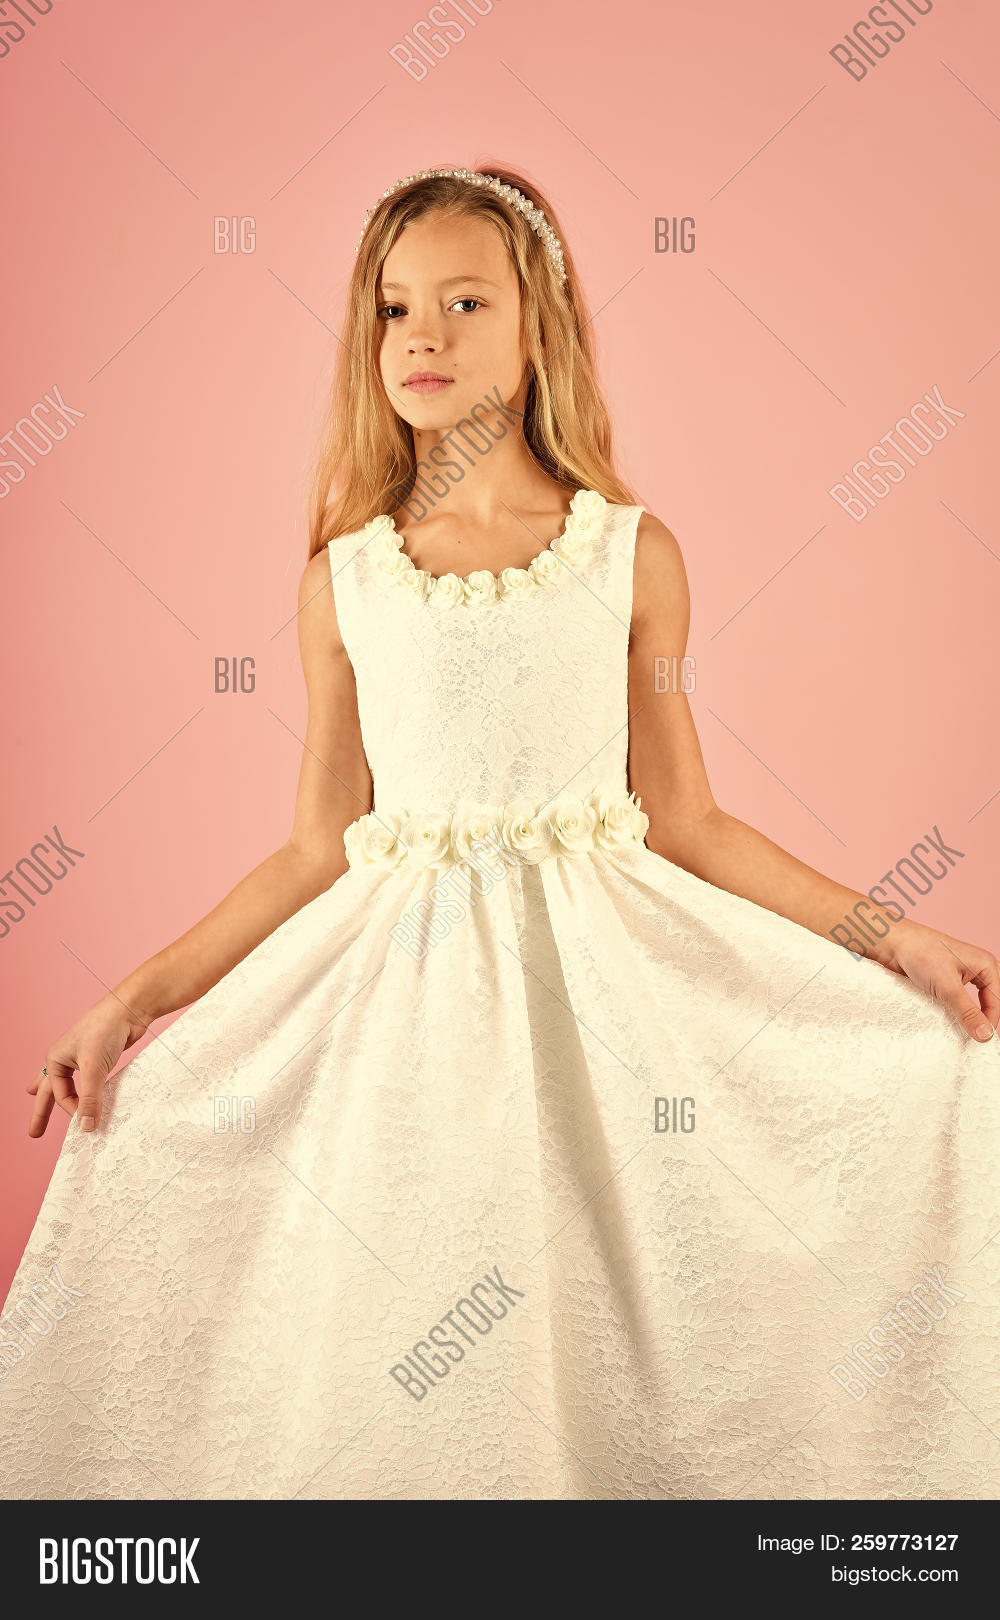 7a984cb43668 Child girl in stylish glamour dress, elegance. Look, hairdresser, makeup.  Fashion and beauty, little princess. Little girl in fashionable dress, prom.